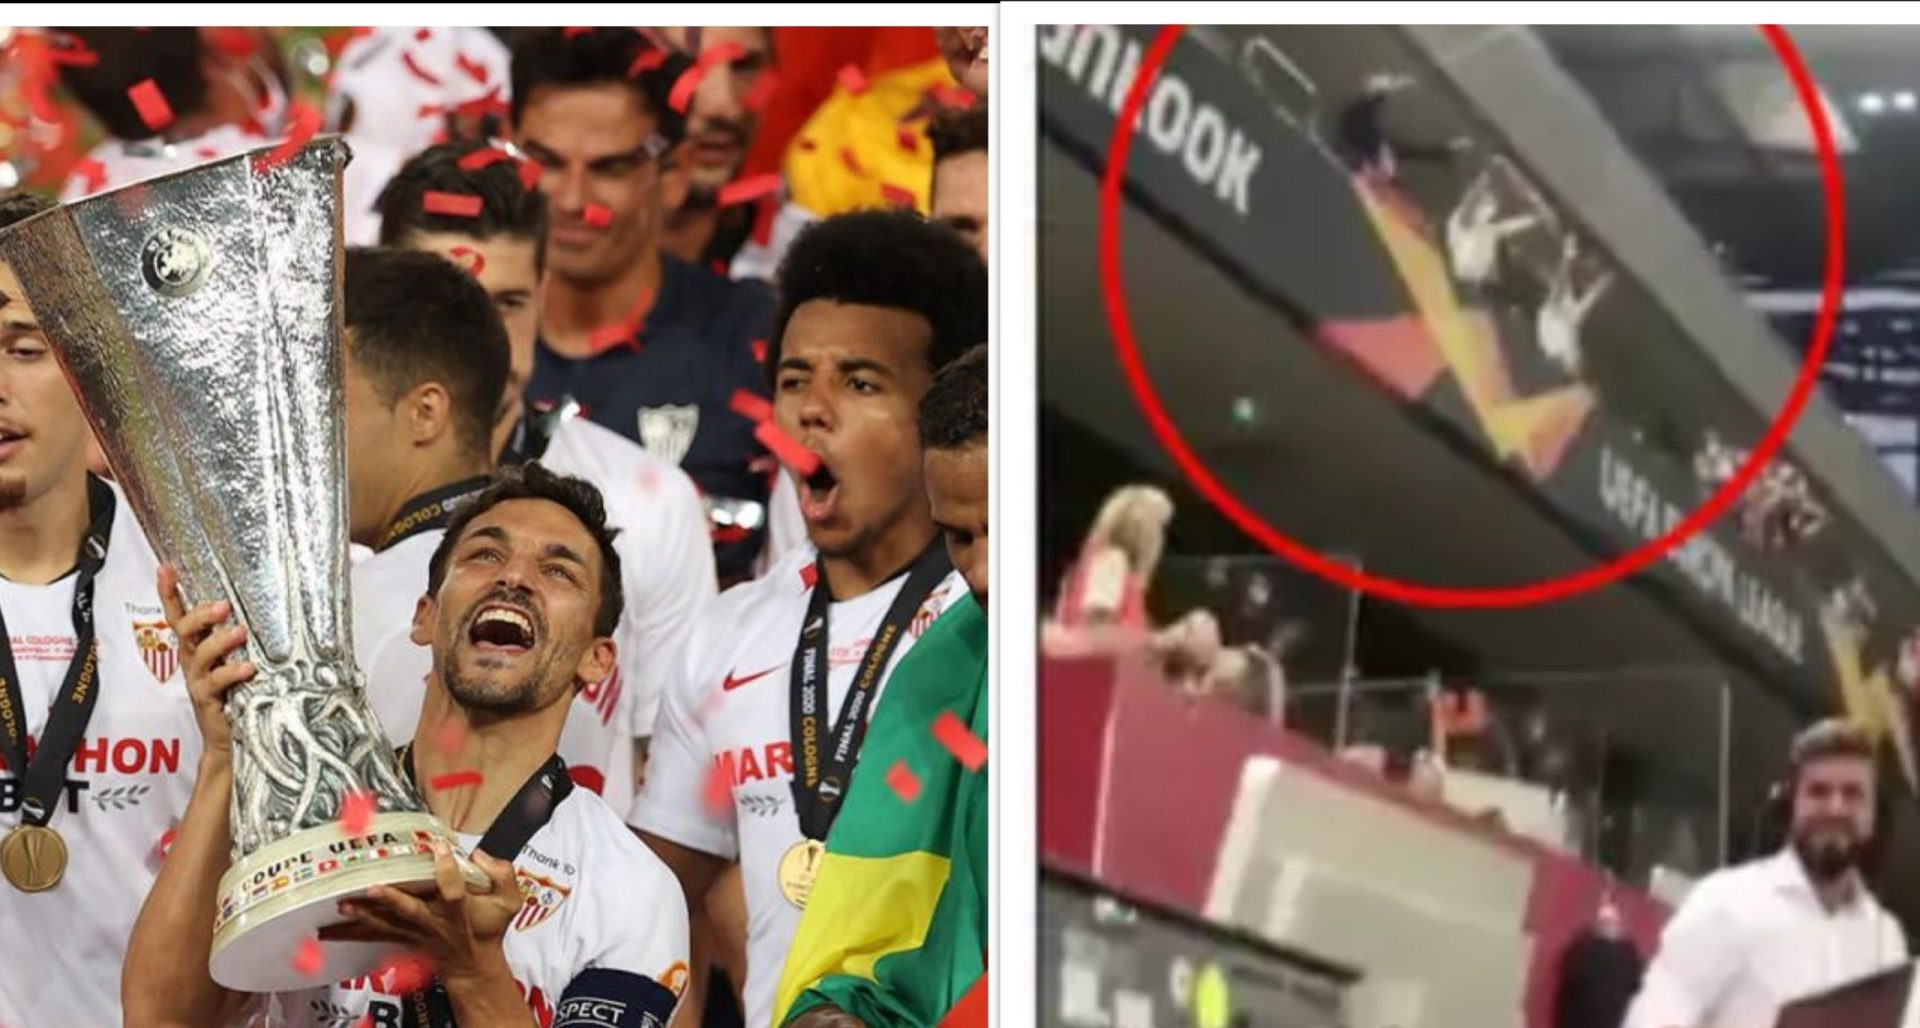 Sneaky trespassers-Sevilla fans enter the stadium dressed as officials in Europa League Final - THE SPORTS ROOM